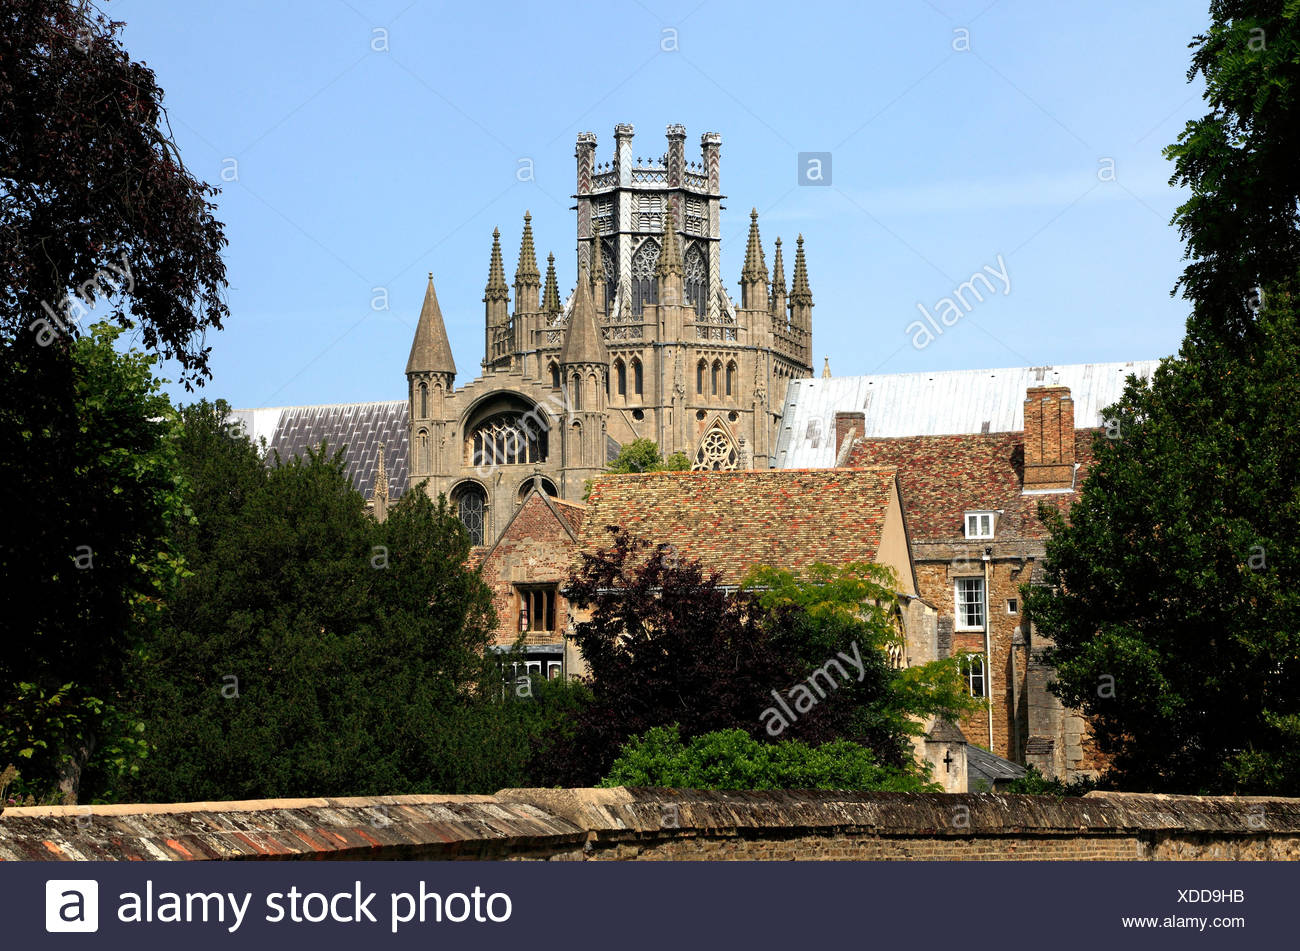 Ely Cathedral, The Octagon and Lantern Towers, Cambridgeshire, England UK, English medieval cathedrals precinct tower - Stock Image